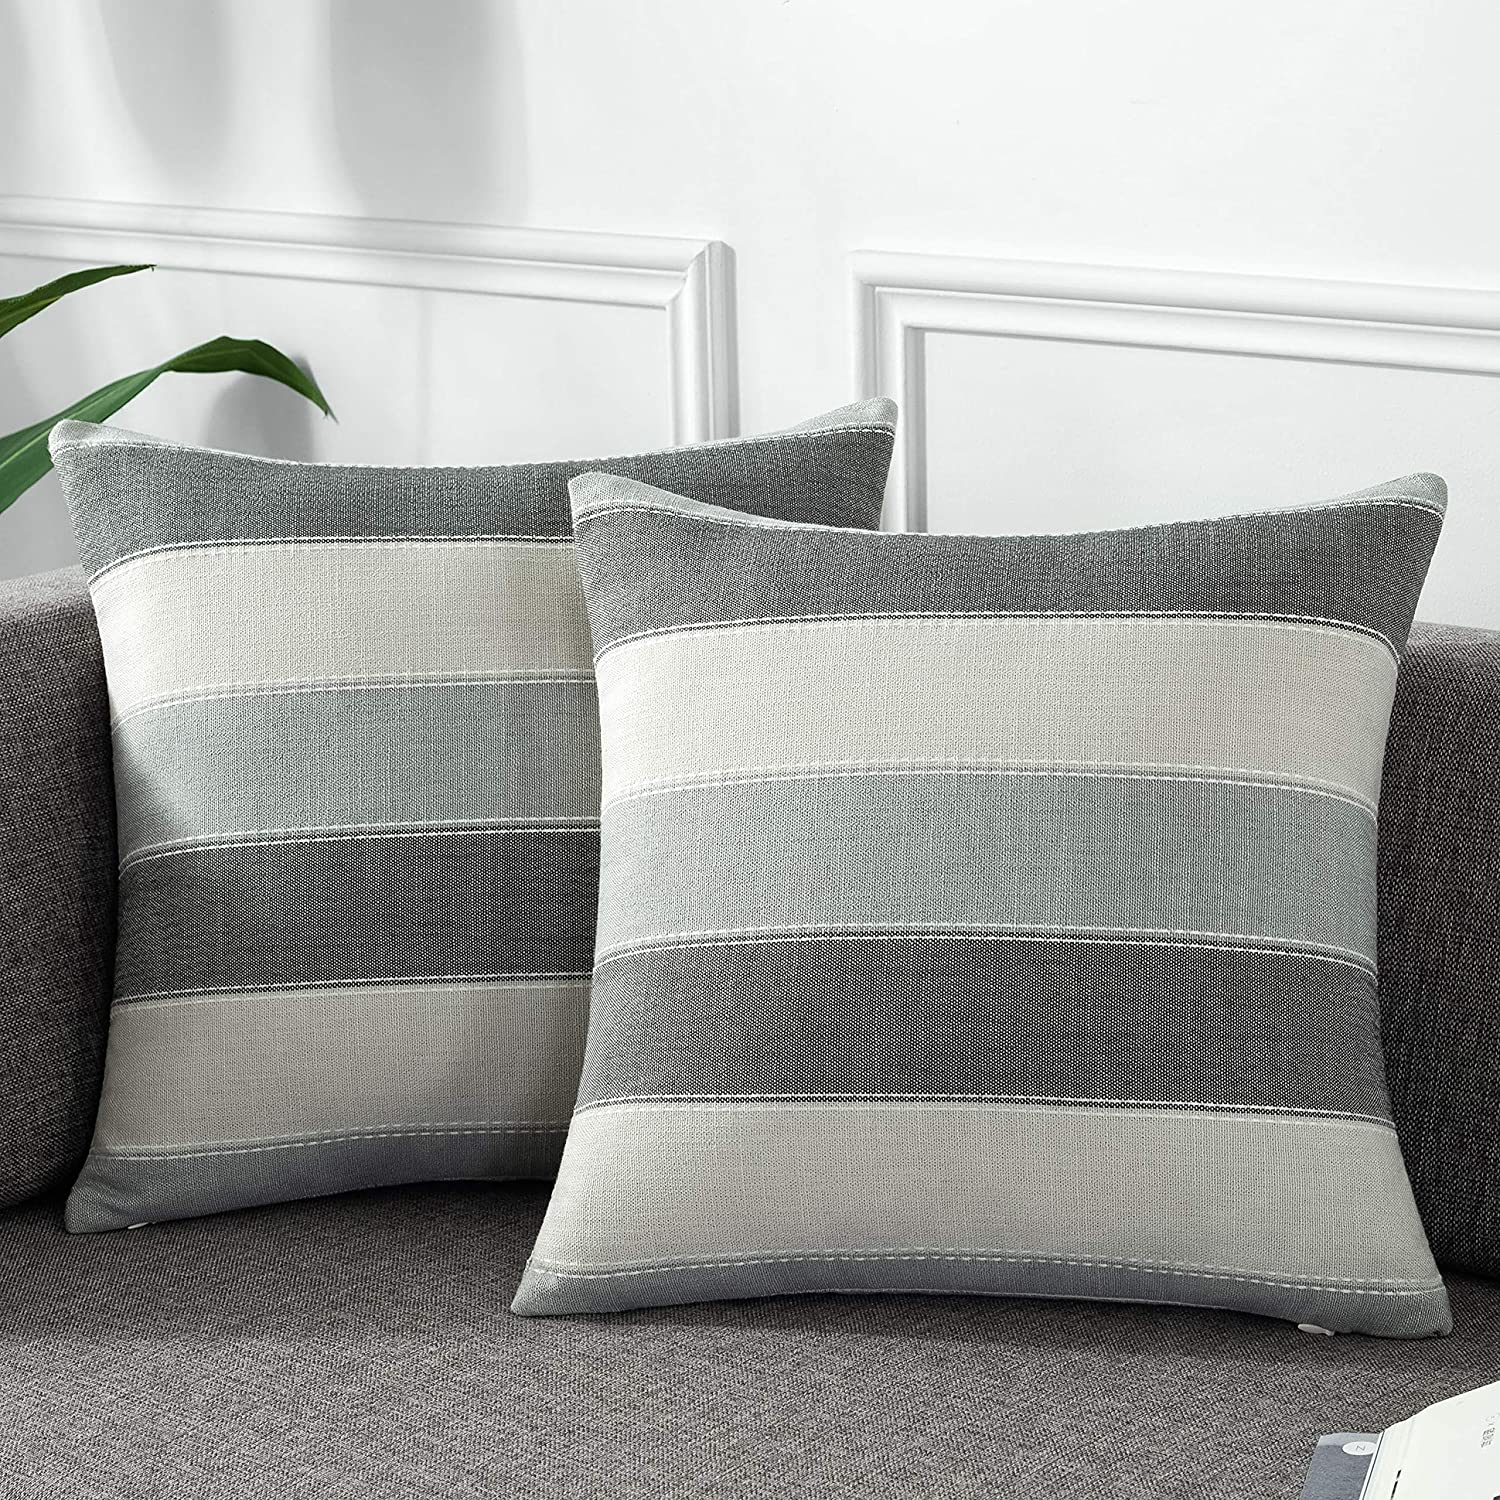 AmHoo Pack of 2 Farmhouse Stripe Check Throw Pillow Covers Set Case Cotton Linen Decorative Pillowcases Cushion Cover for Couch Bench Sofa 20x20Inch Dark Grey Beige